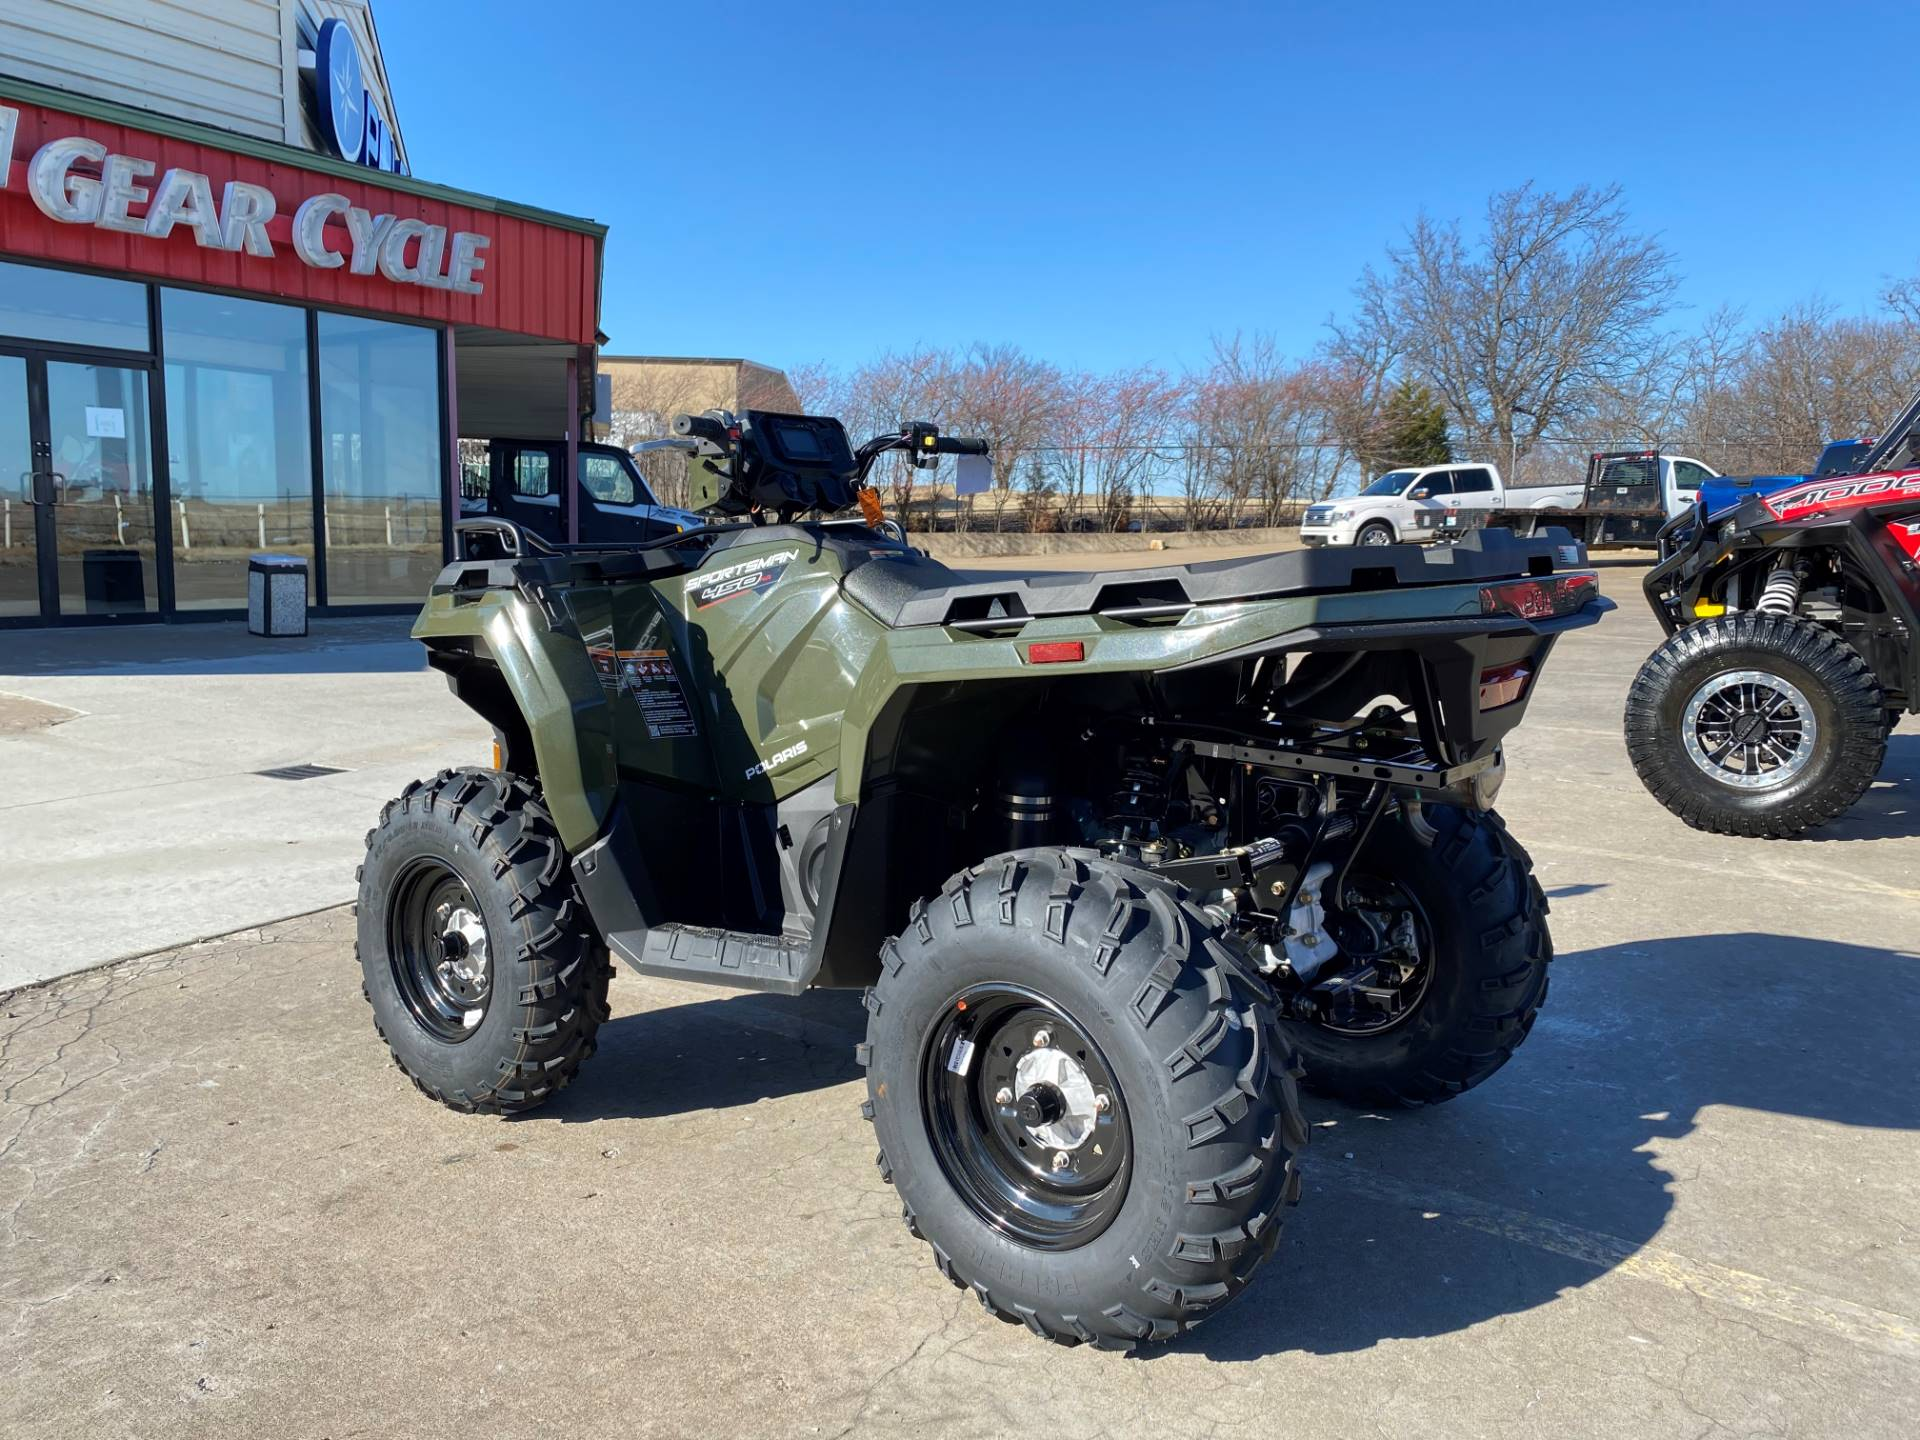 2021 Polaris Sportsman 450 H.O. in Broken Arrow, Oklahoma - Photo 4